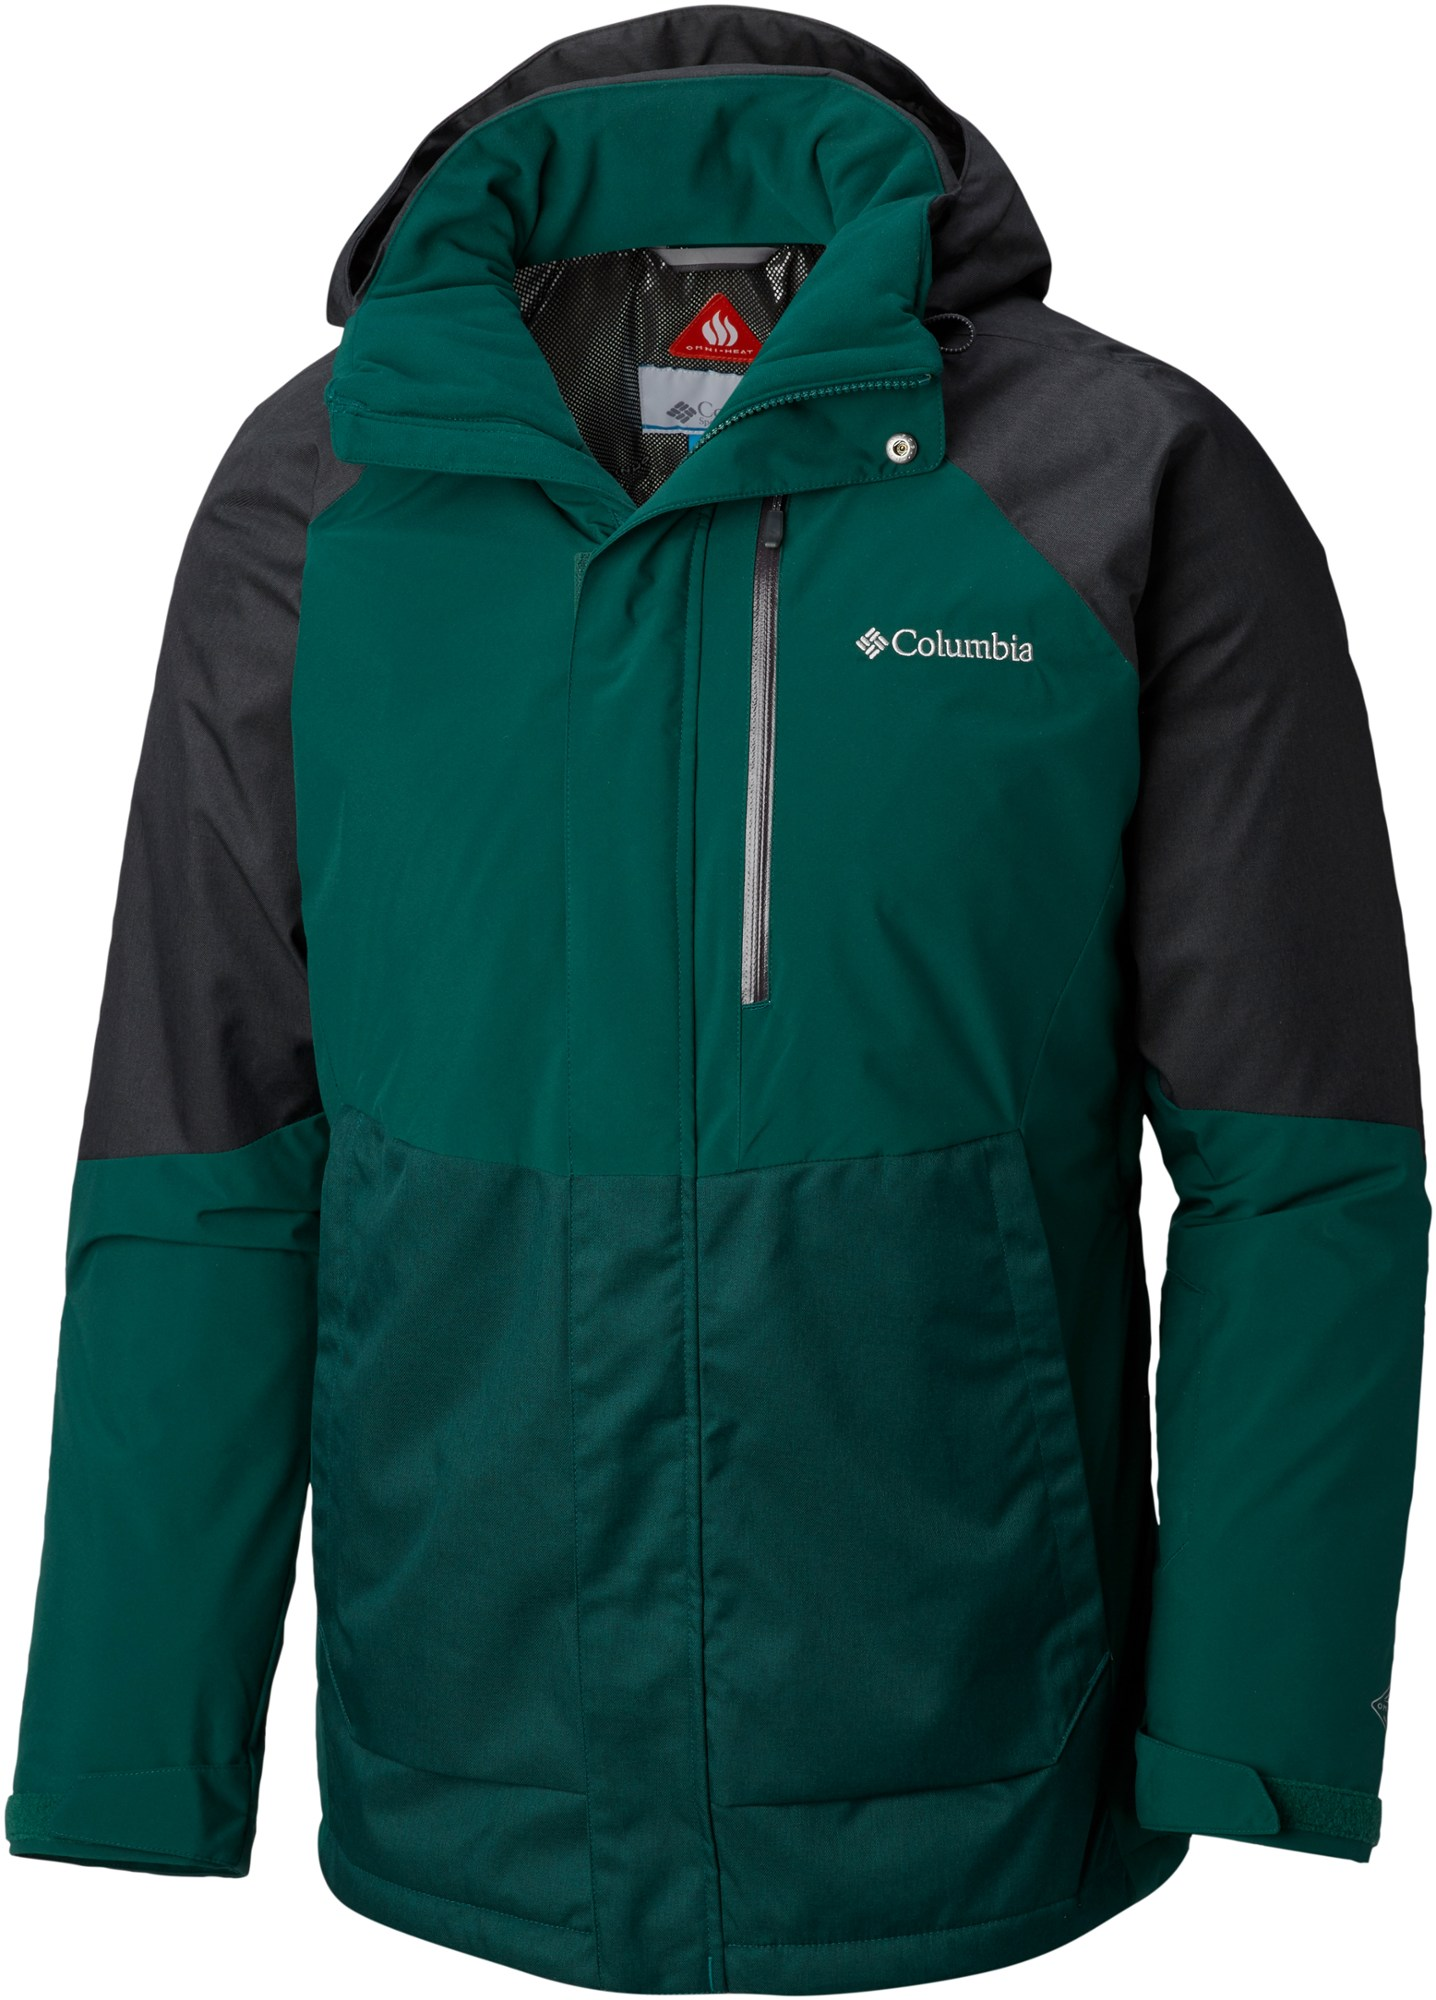 Columbia Wildside Insulated Jacket - Men's